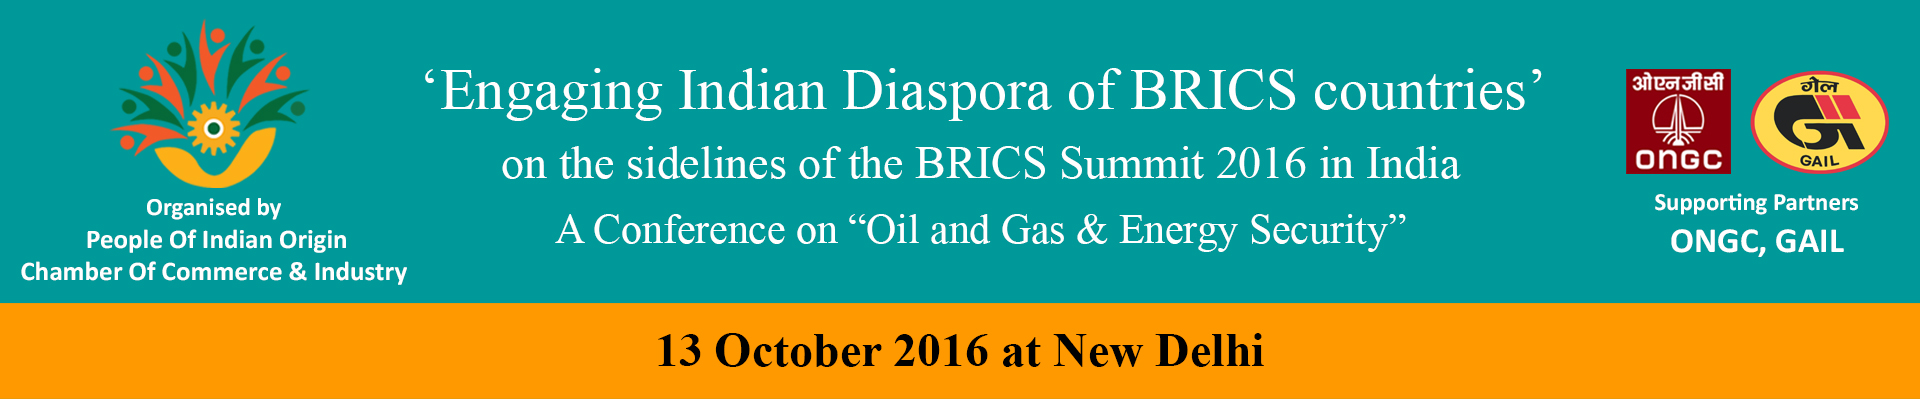 BRICS SUMMIT-2016, New Delhi